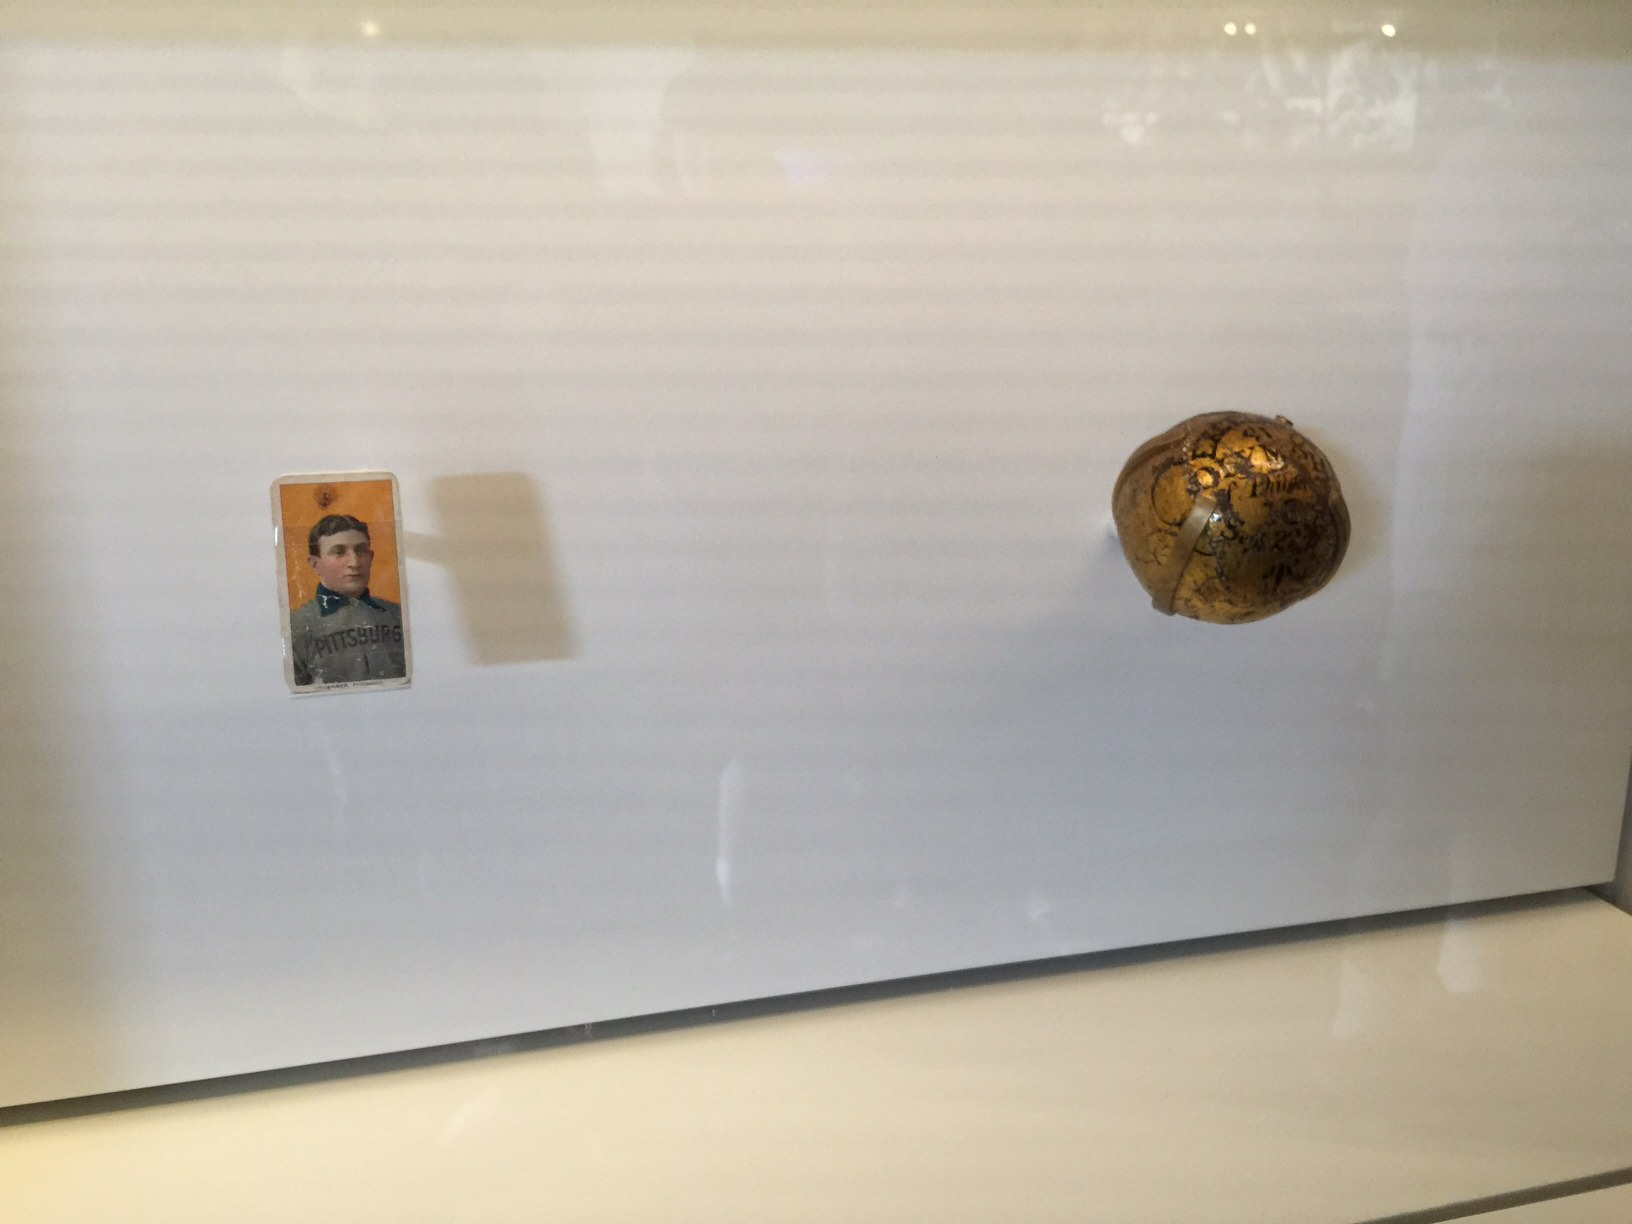 A Honus Wagner baseball card worth more than one million dollars is on display at the Hall of Fame exhibit in Davenport.